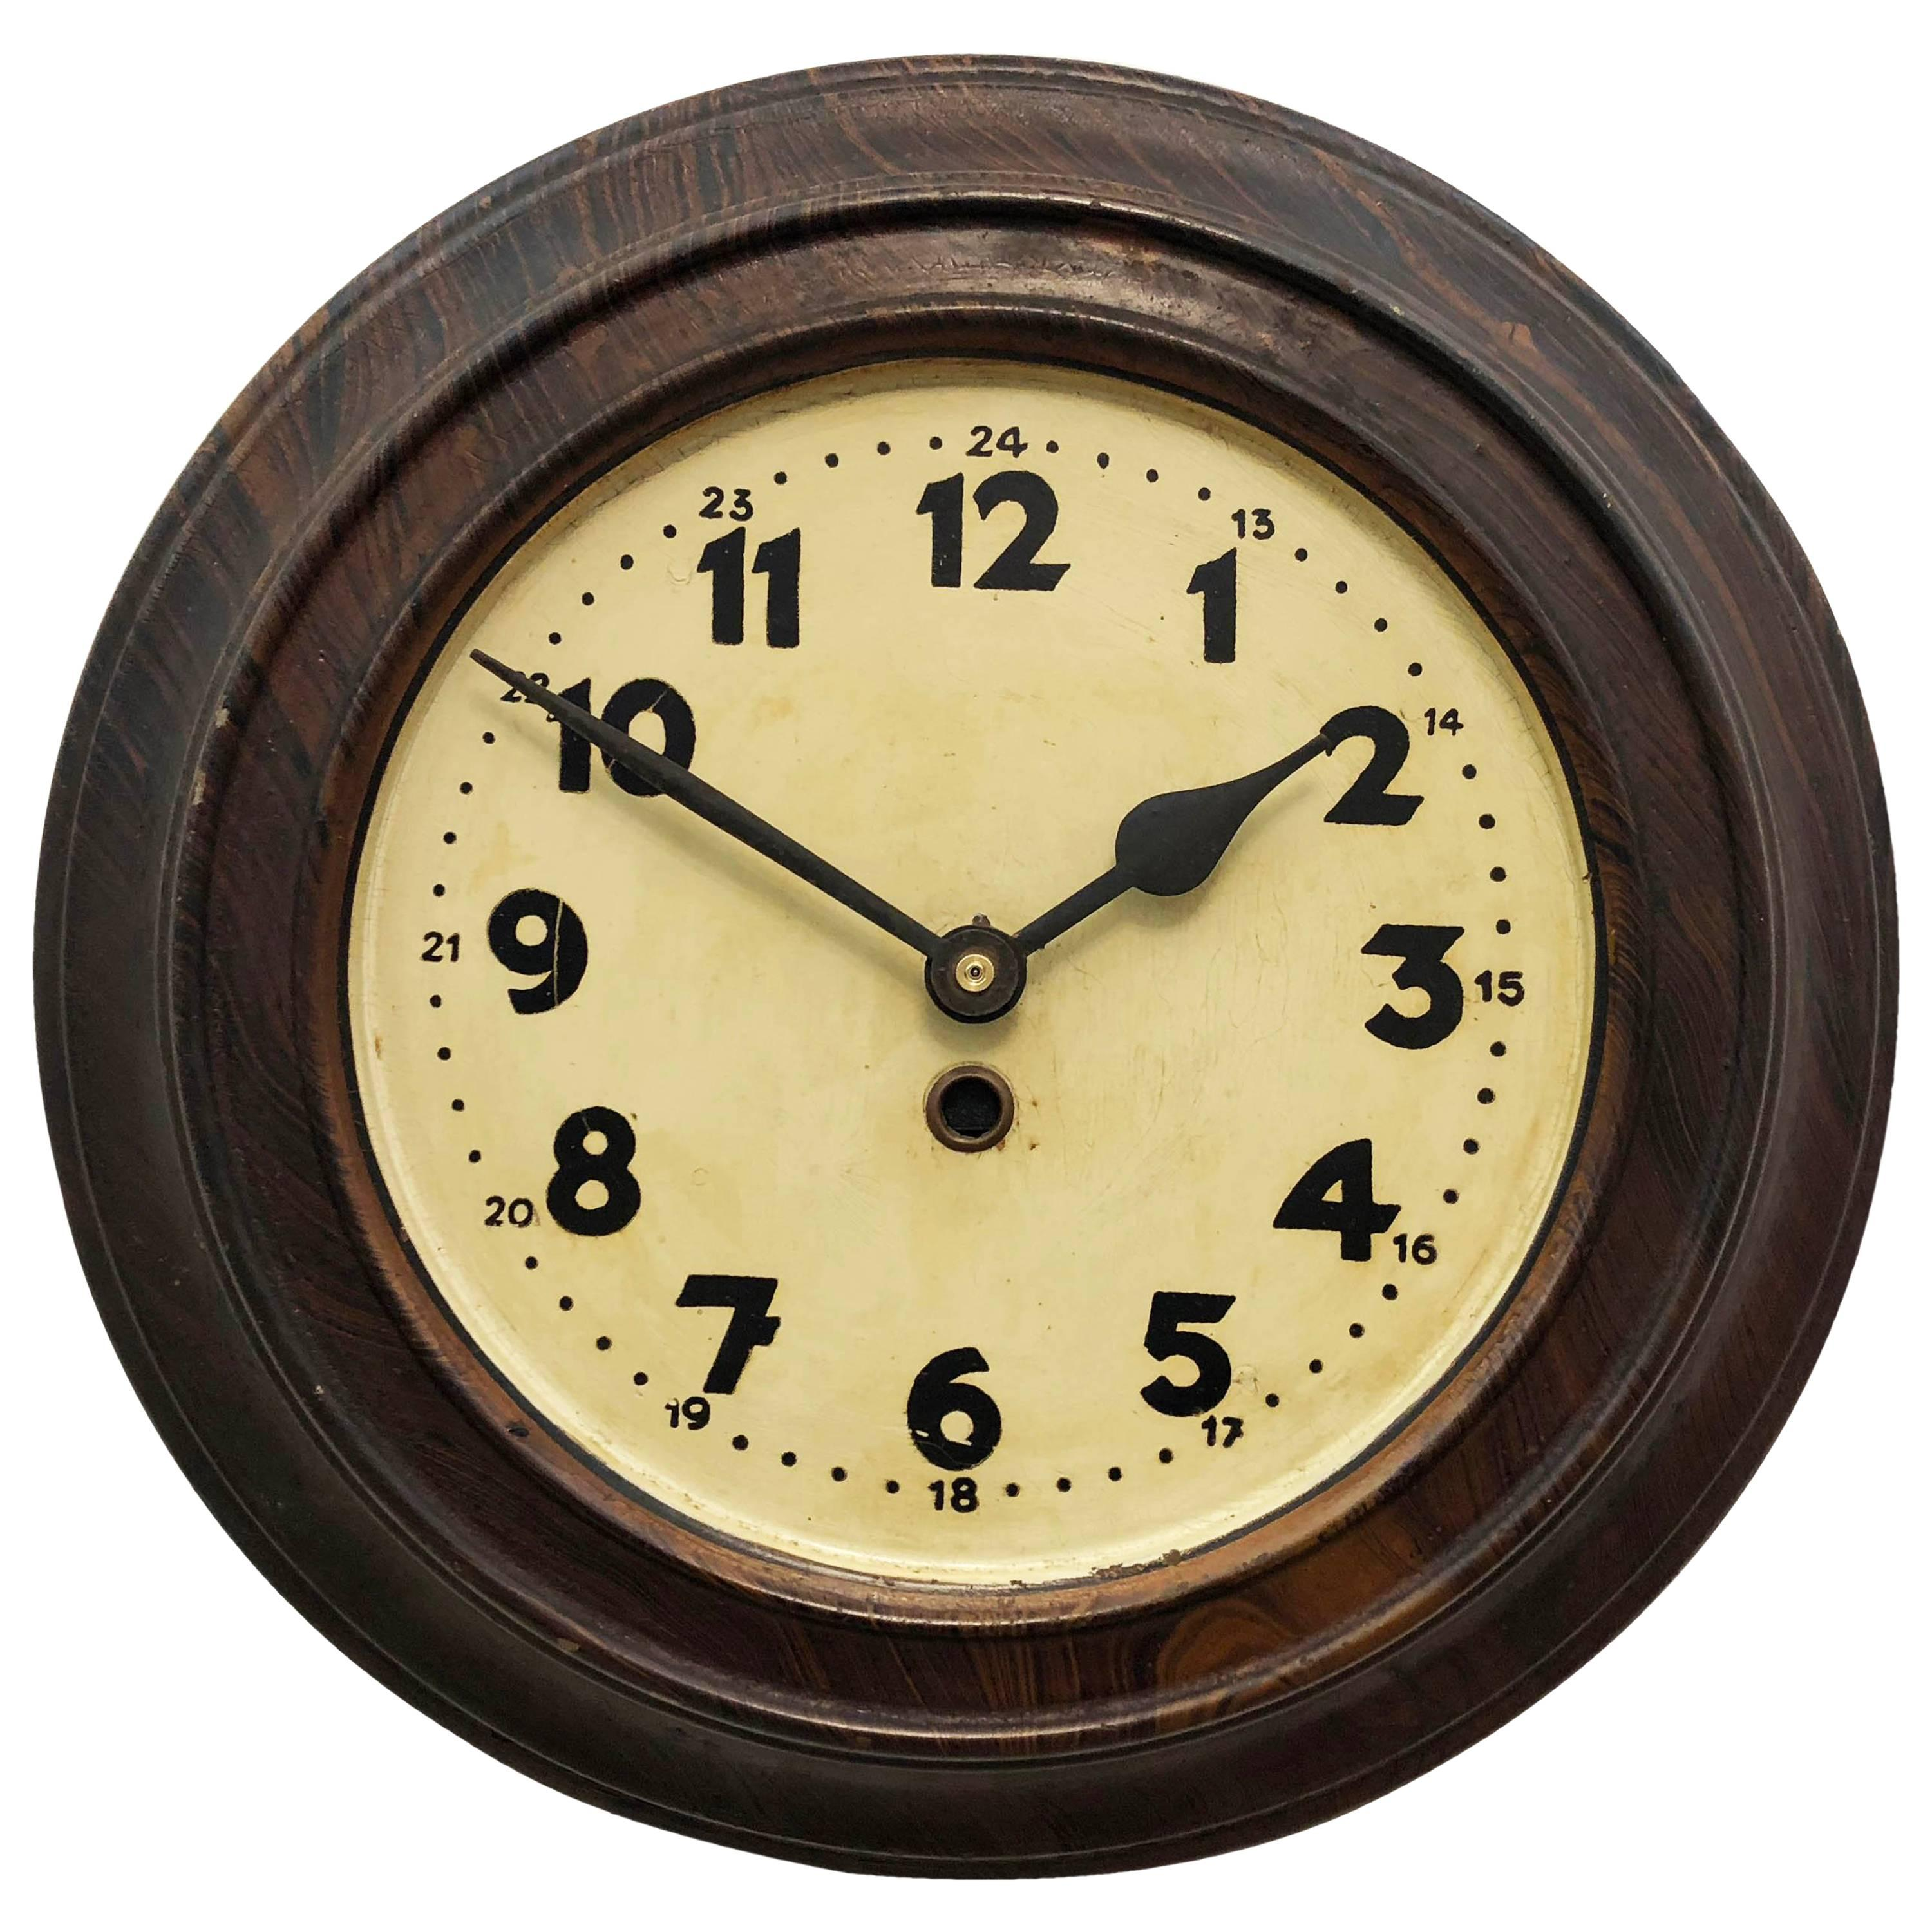 Large Steel Art Deco Wall Clock For Sale at 1stdibs